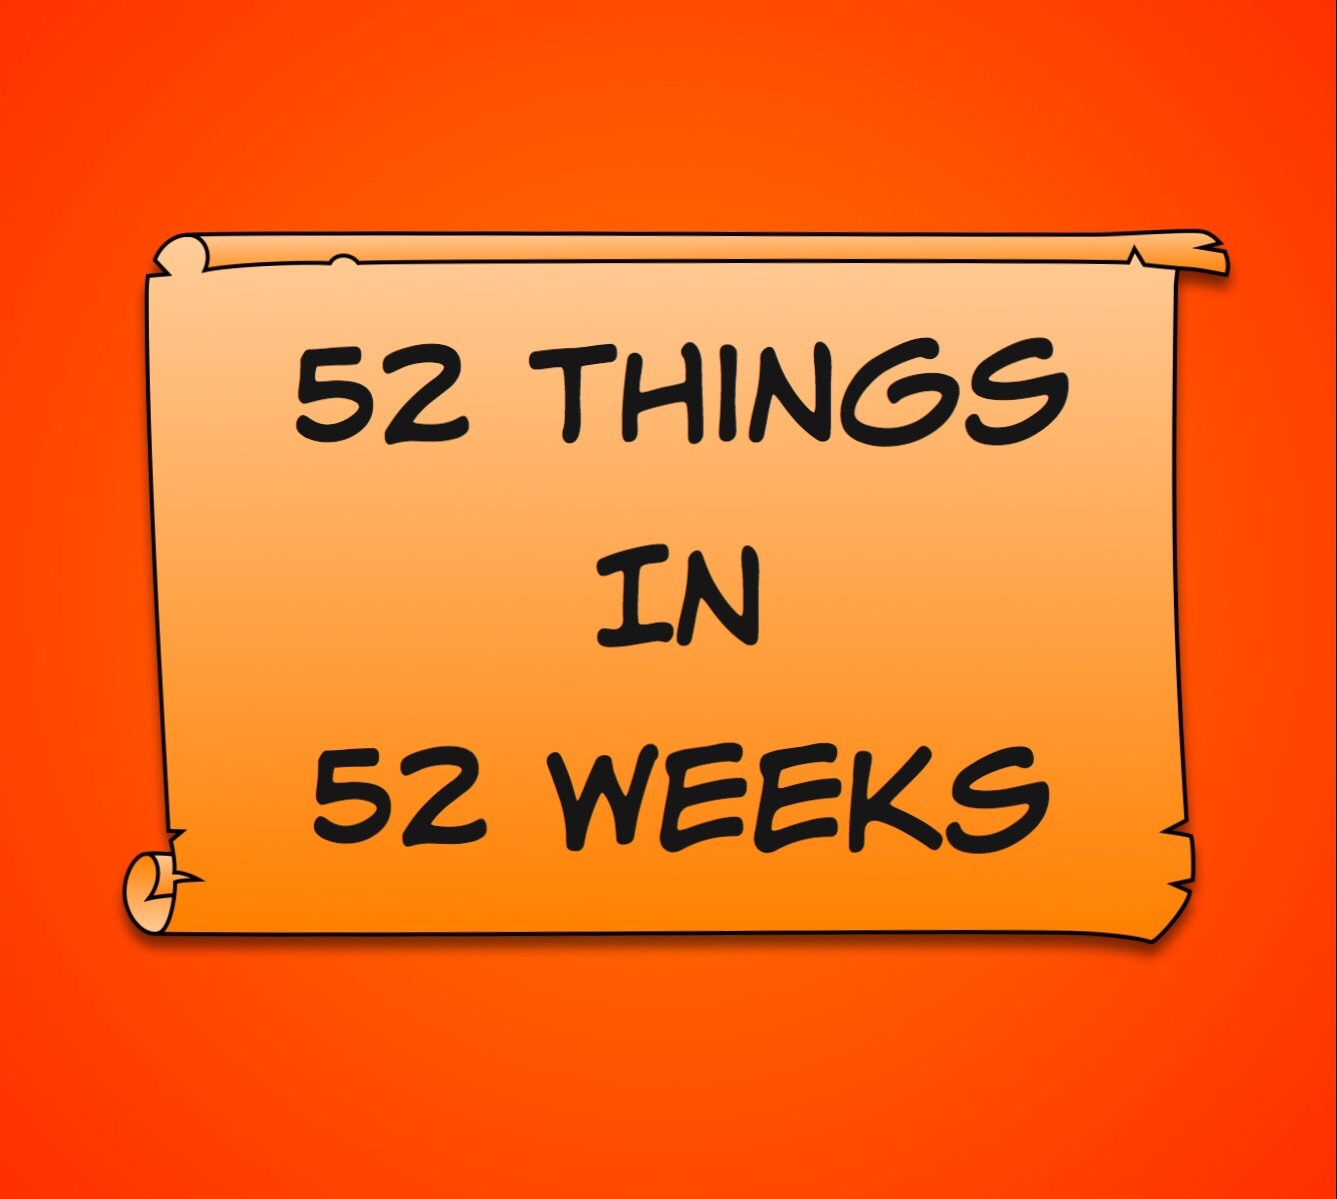 52 items in 52 weeks